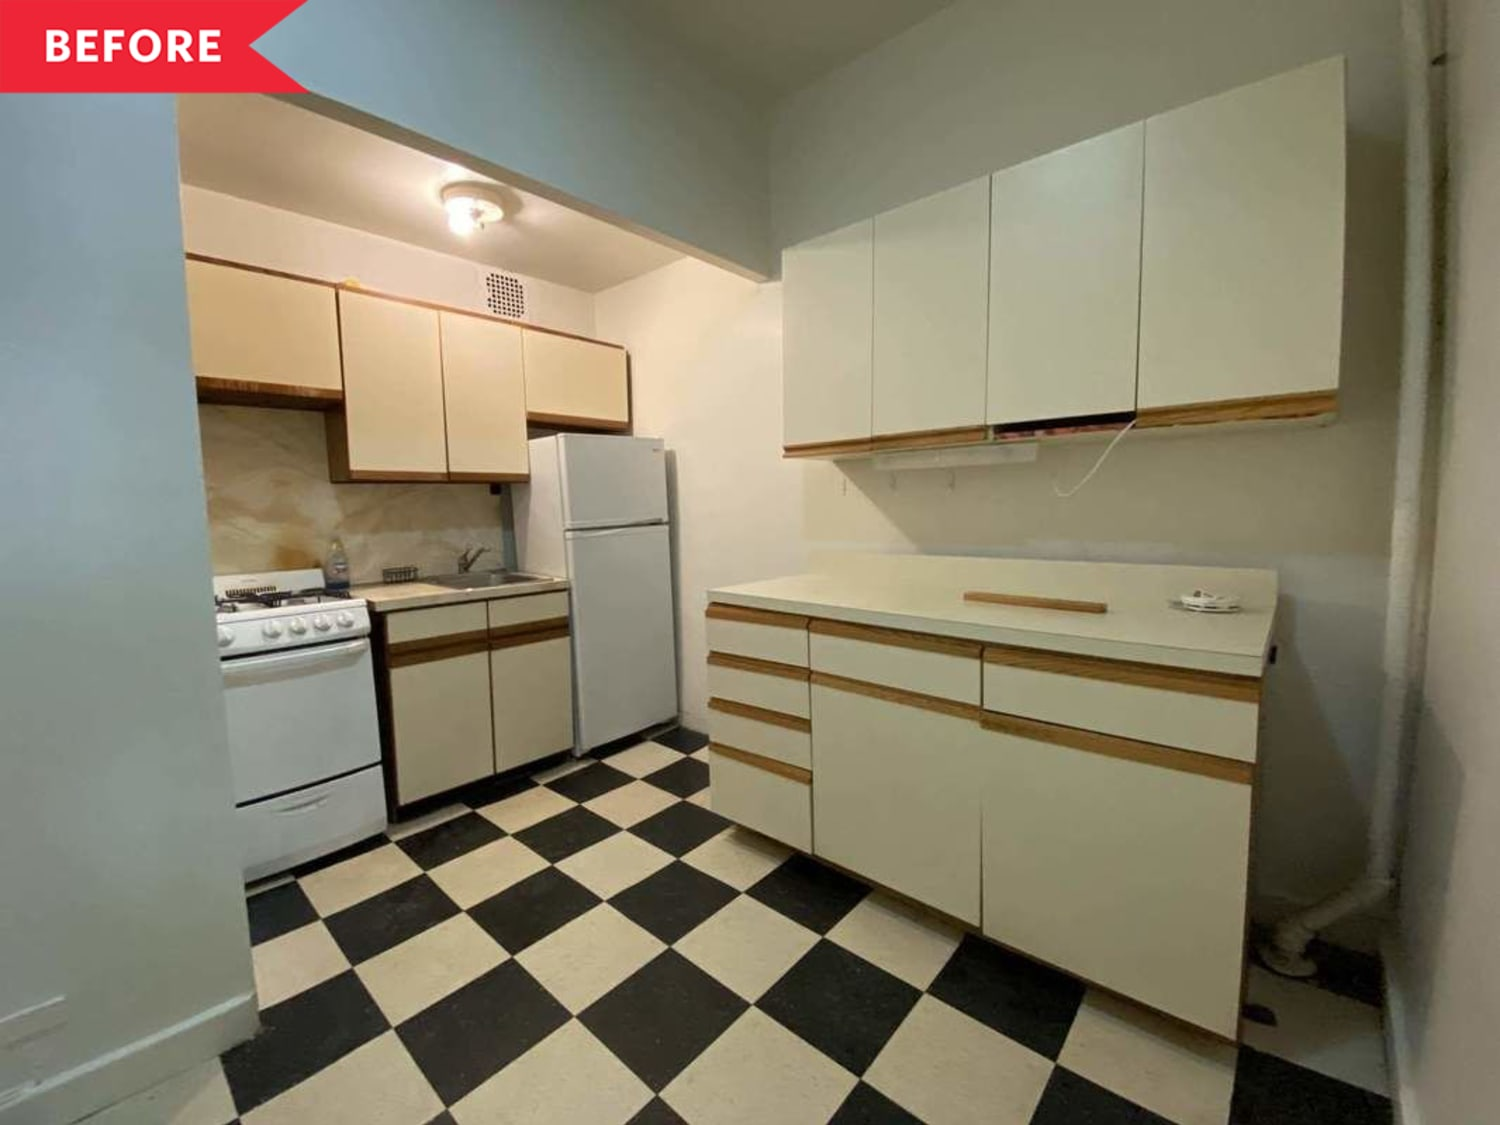 Before and After: A $250 Update Perks up This Drab 1980s Kitchen